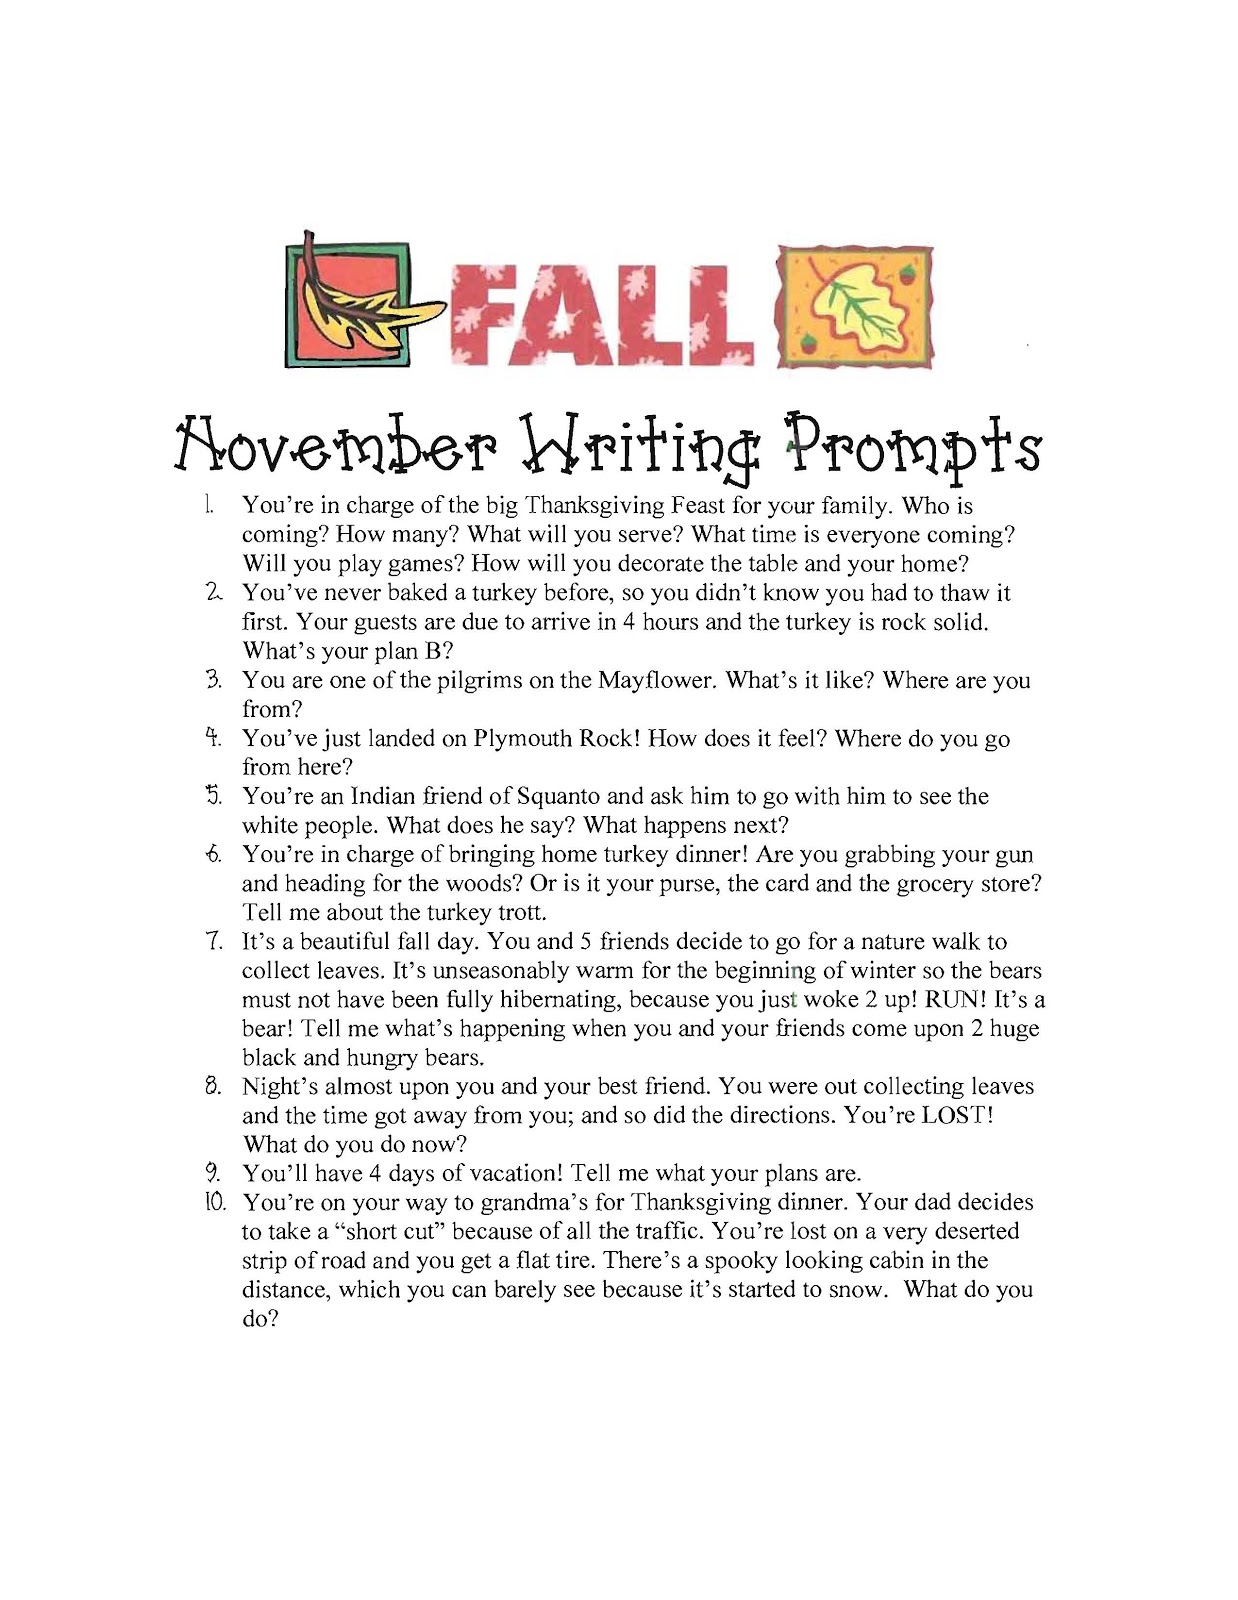 monthly writing prompts Posts about monthly writing prompt written by amyoung0606.